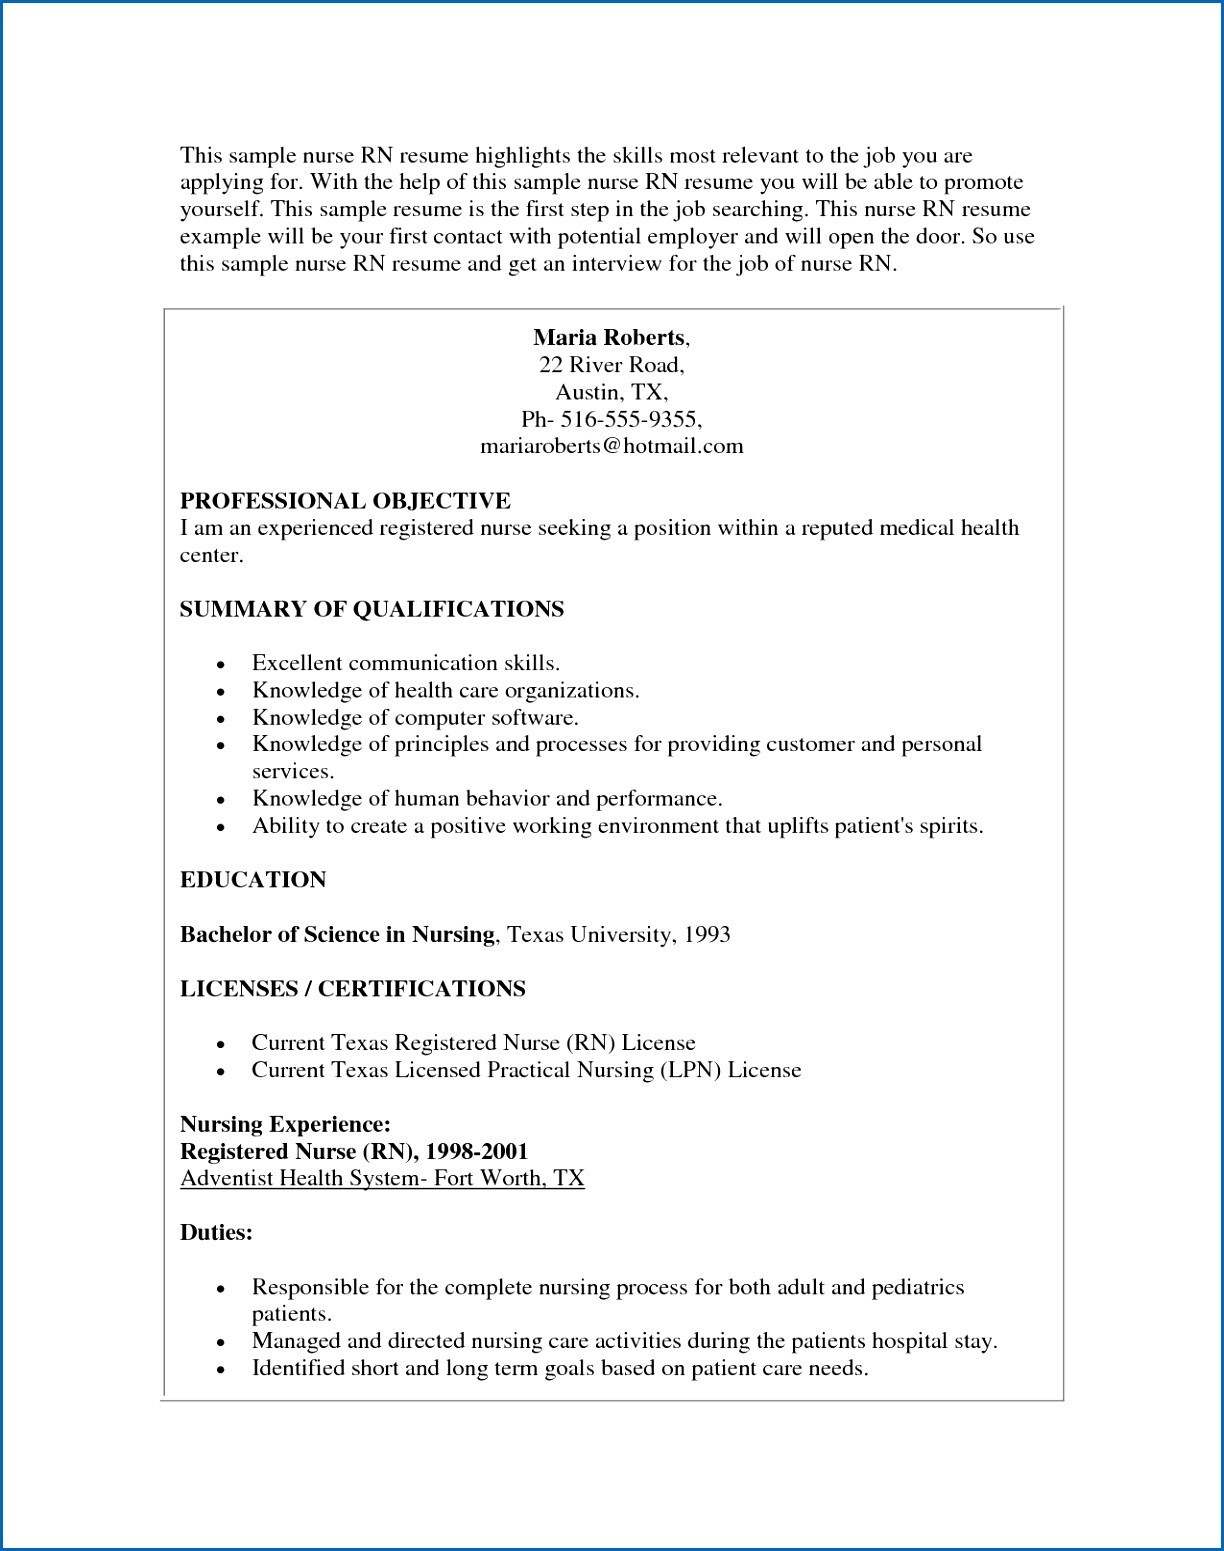 Experienced Rn Resume - Nursing Skills Resume Awesome Nursing Resume Lovely Rn Bsn Resume